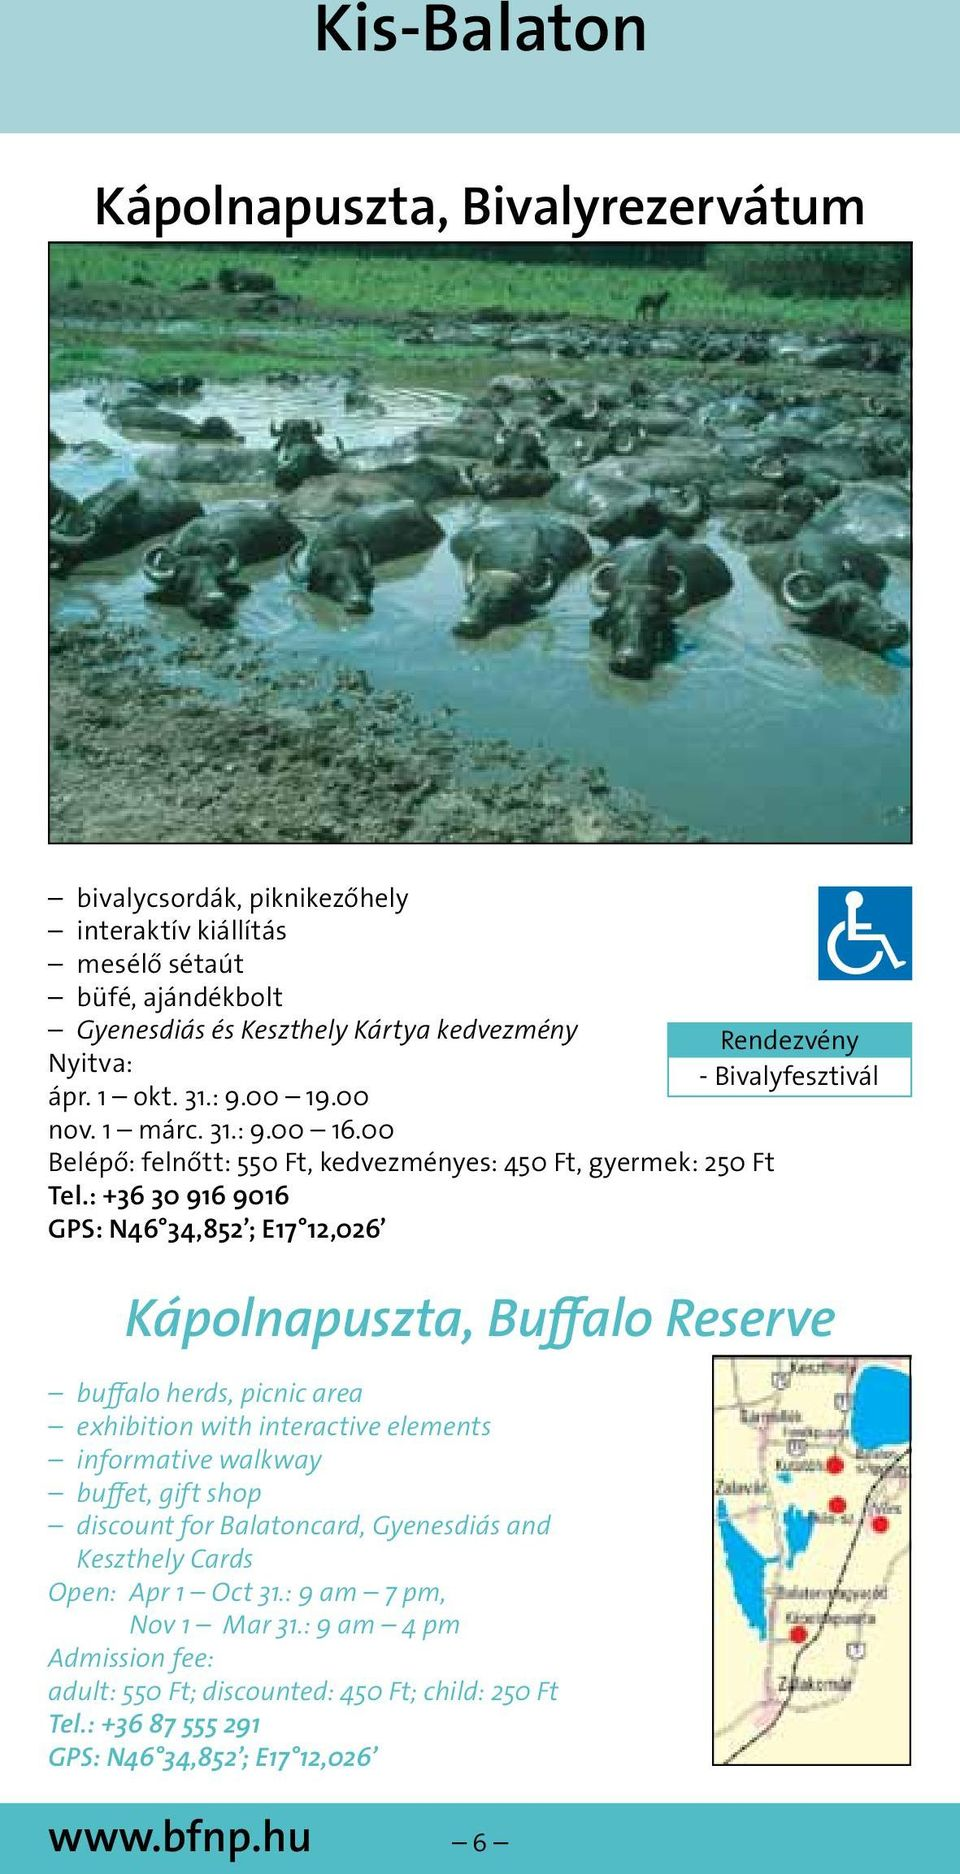 : +36 30 916 9016 GPS: N46 34,852 ; E17 12,026 Kápolnapuszta, Buffalo Reserve buffalo herds, picnic area exhibition with interactive elements informative walkway buffet, gift shop